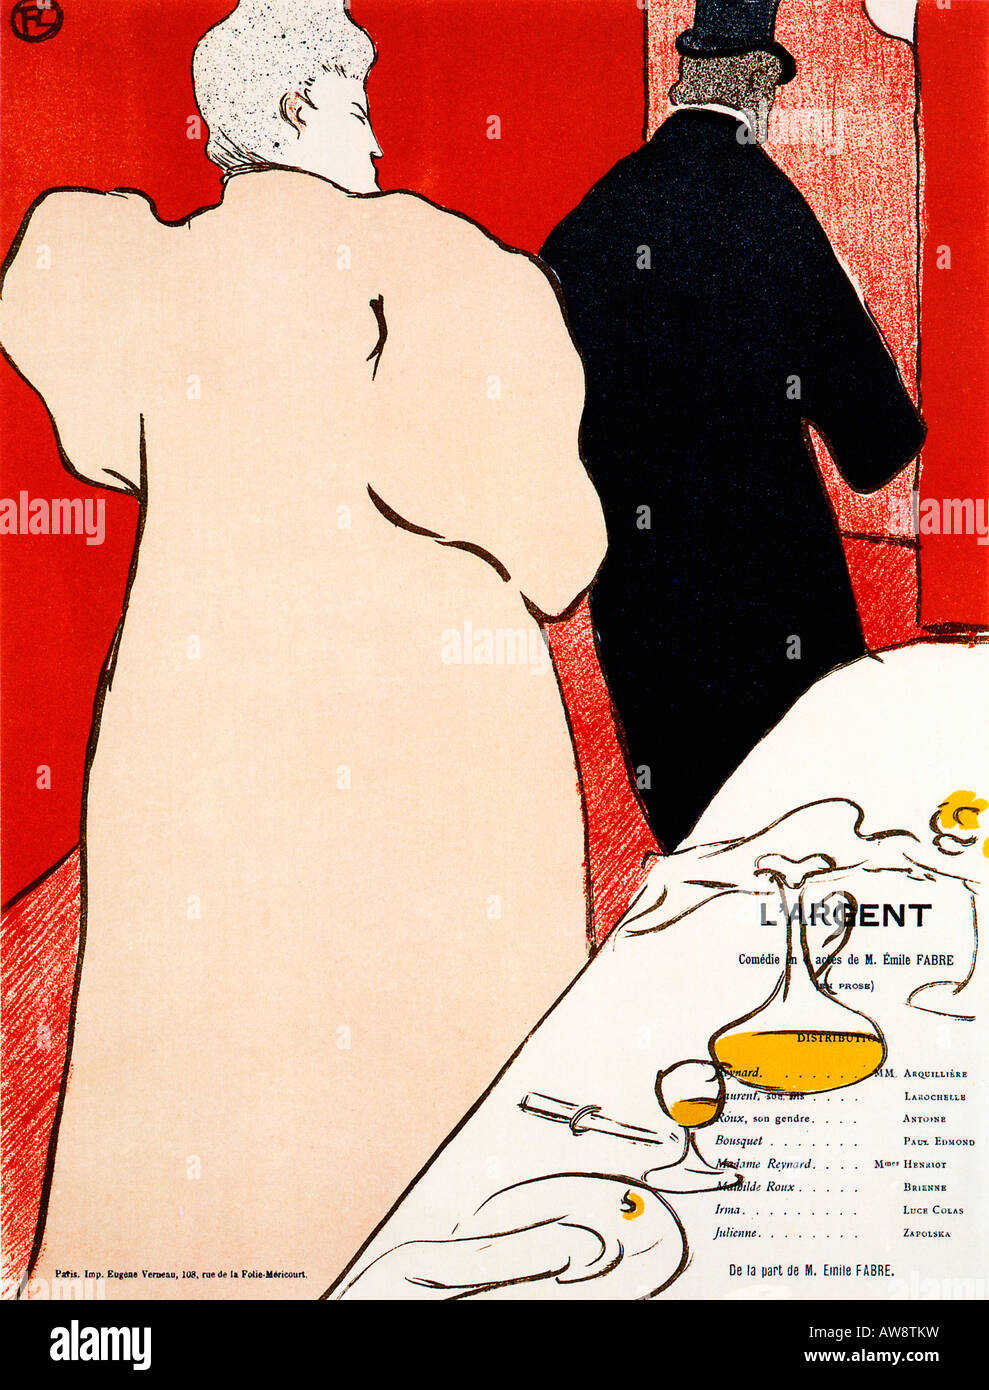 L Argent 1895 Art Nouveau programme cover by Toulouse Lautrec for the Emil Fabre play with Henriot and Arquilliere - Stock Image